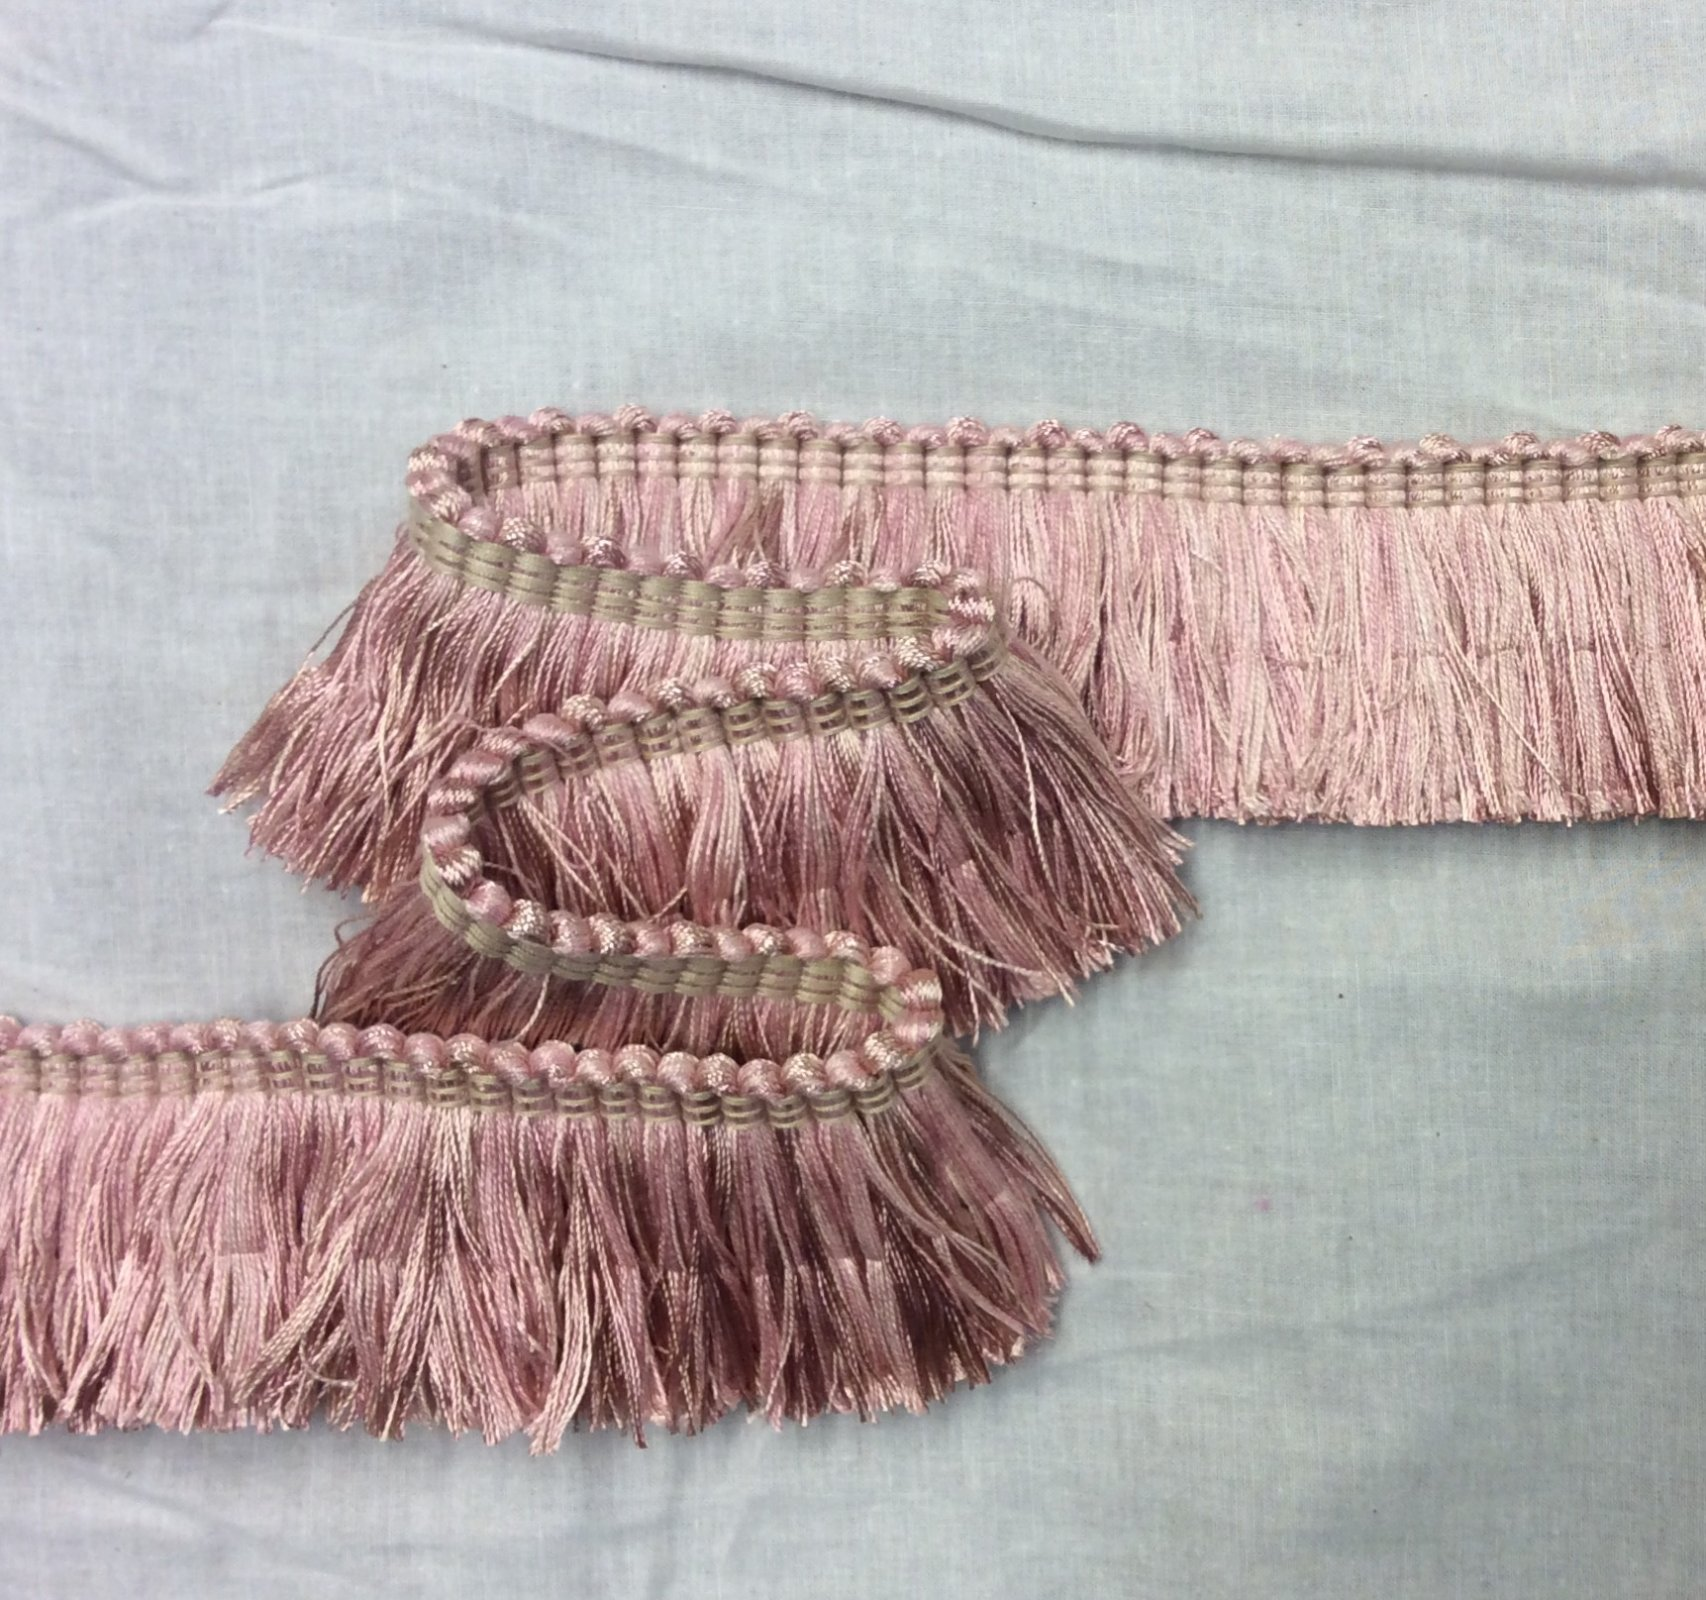 blush home decor.htm flamingo pink blush 2 brushed fringe home decor upholstery trim eptx88  flamingo pink blush 2 brushed fringe